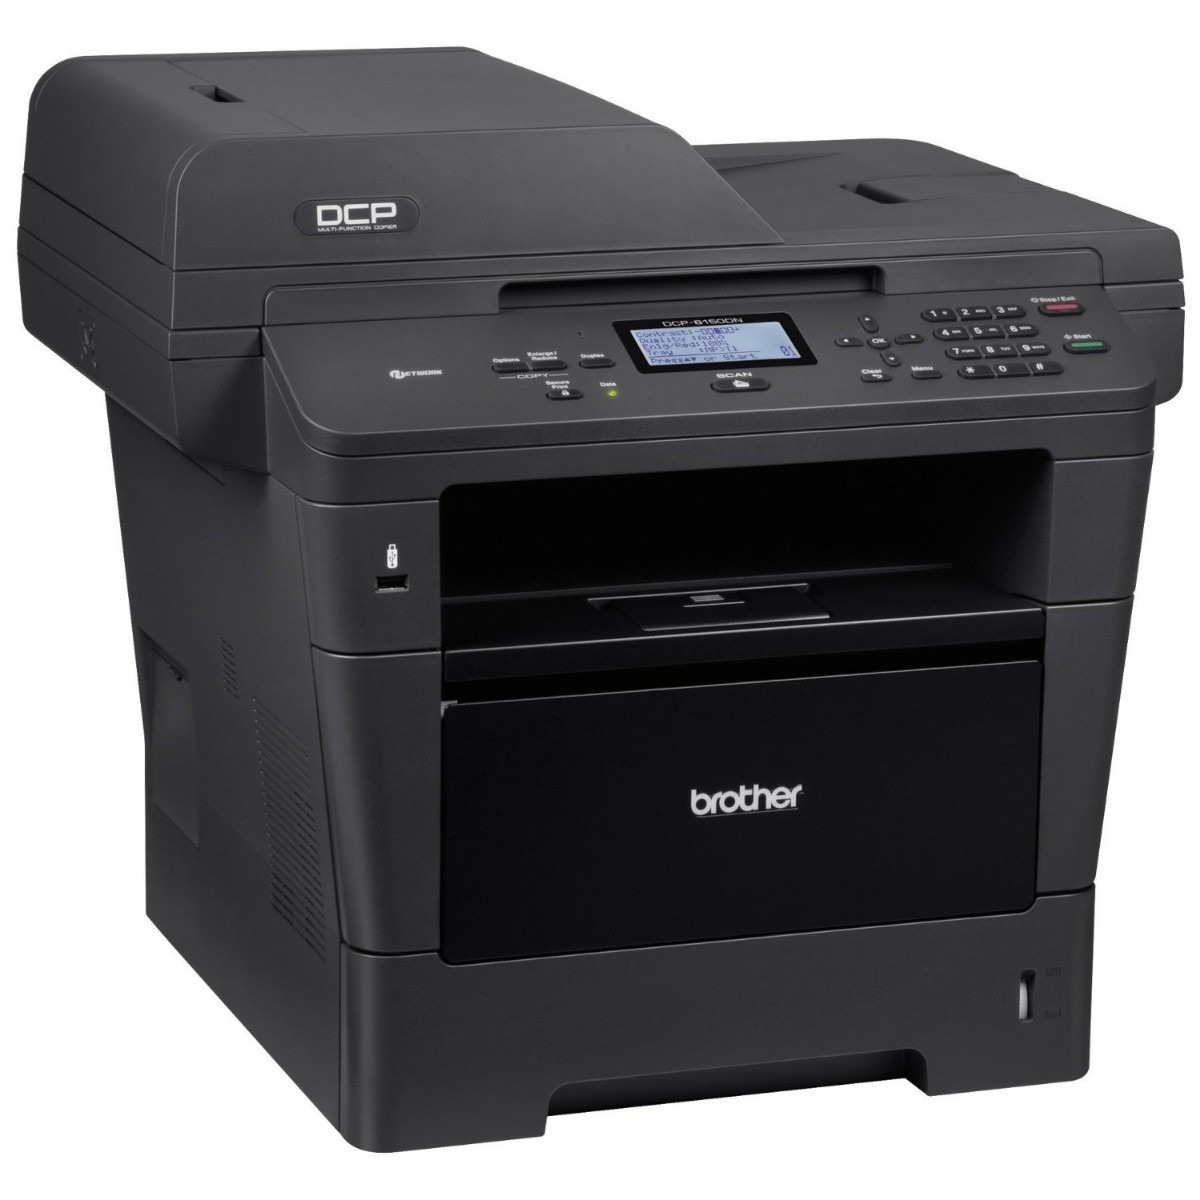 Brother DCP-8150DN XML Paper Specification Printer Driver Download (2019)